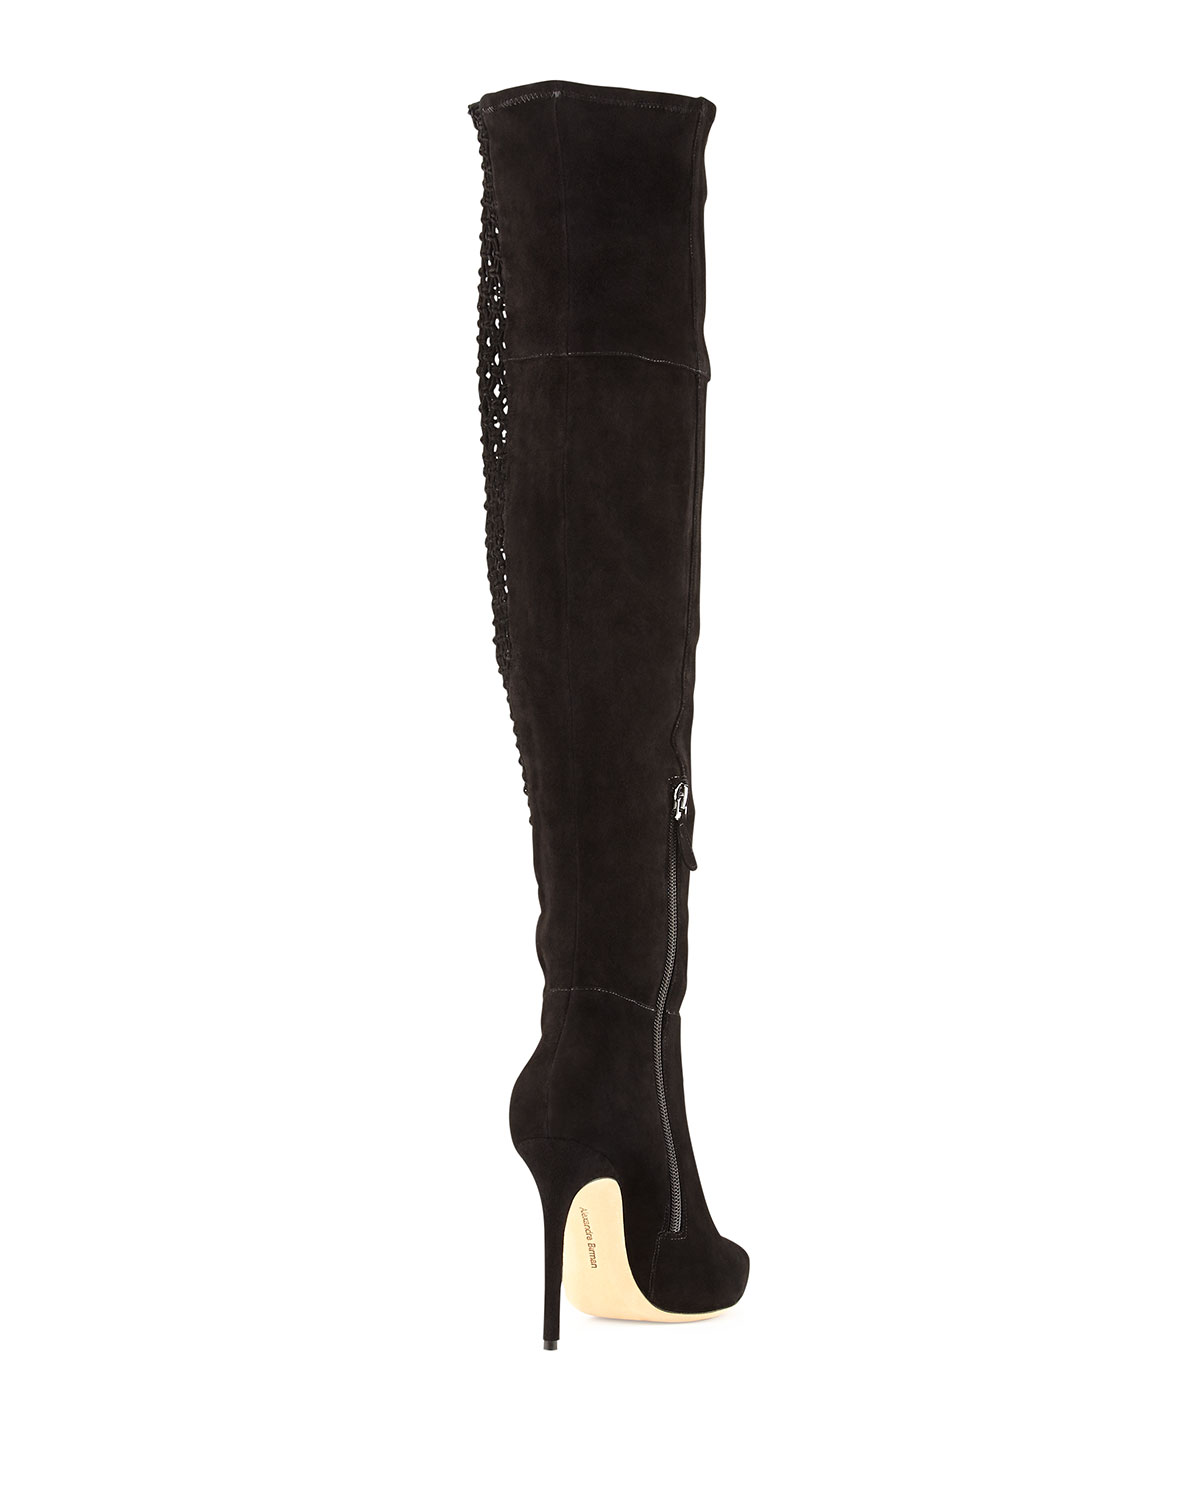 Alexandre Birman Stretch Suede & Crochet Over-the-Knee Boot